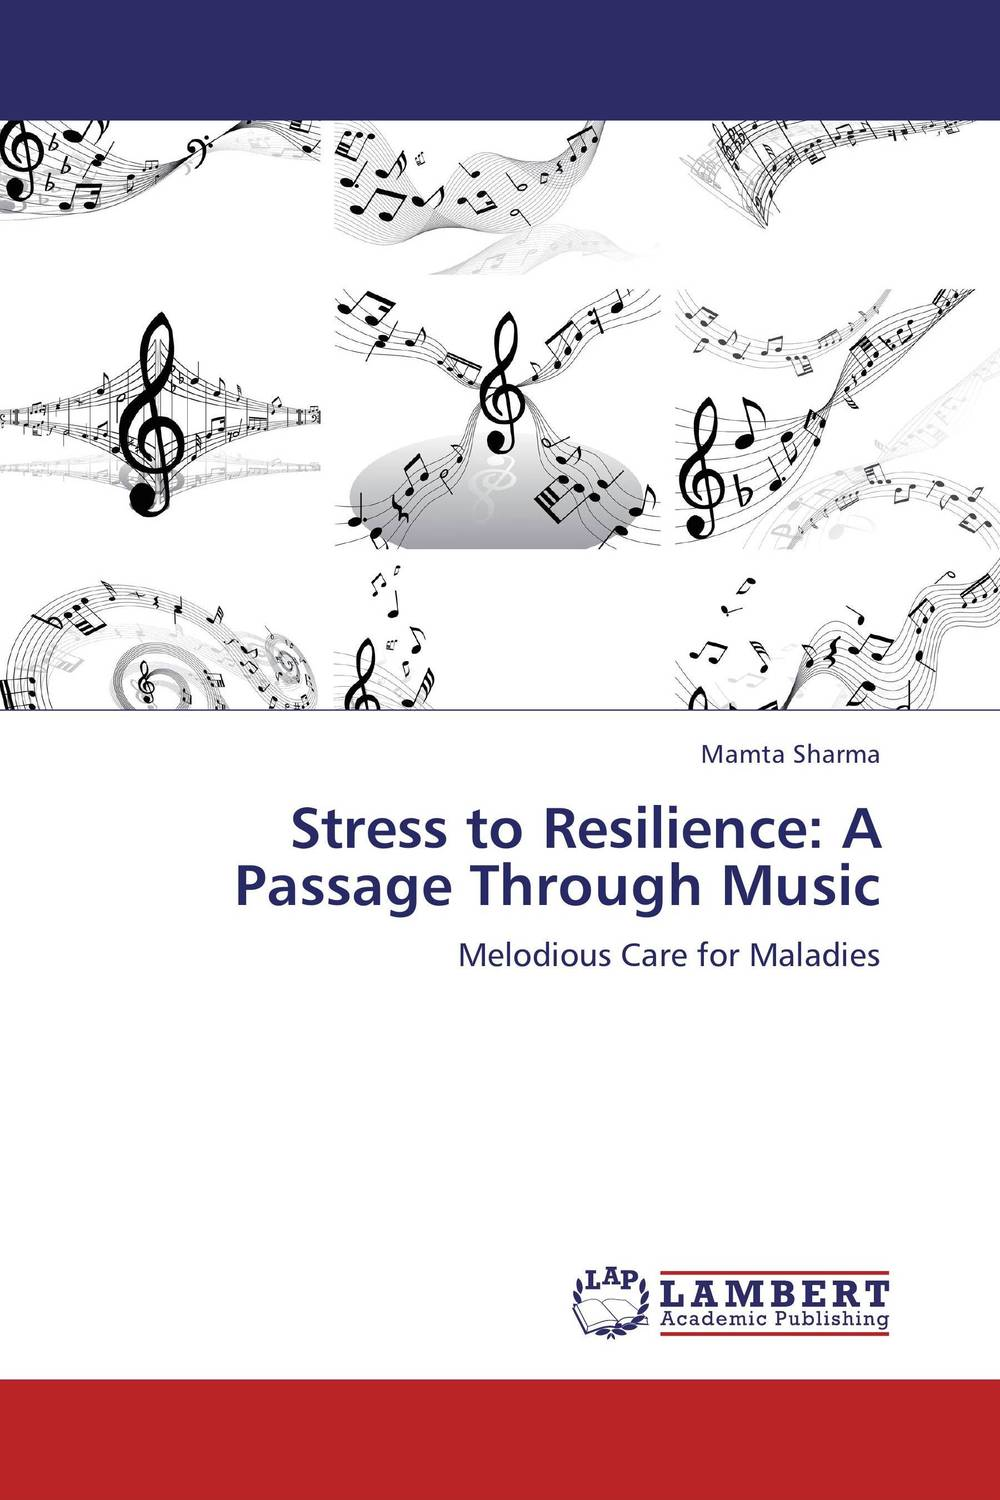 Stress to Resilience: A Passage Through Music contribution of magnetic stress energy to supernova bounce